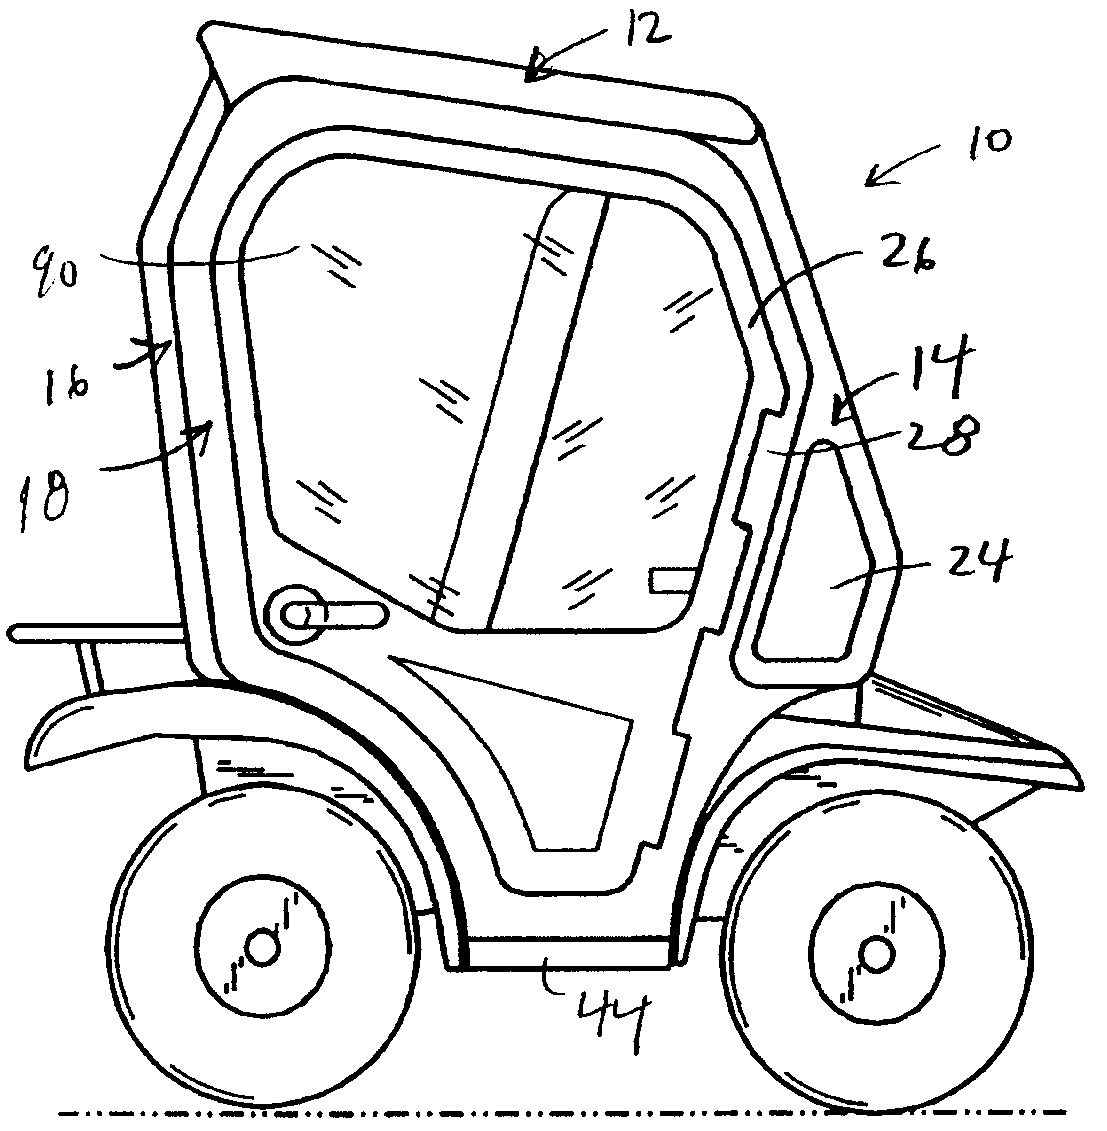 Bobcat construction coloring pages -  Construction Trucks Colouring Pages Page 3